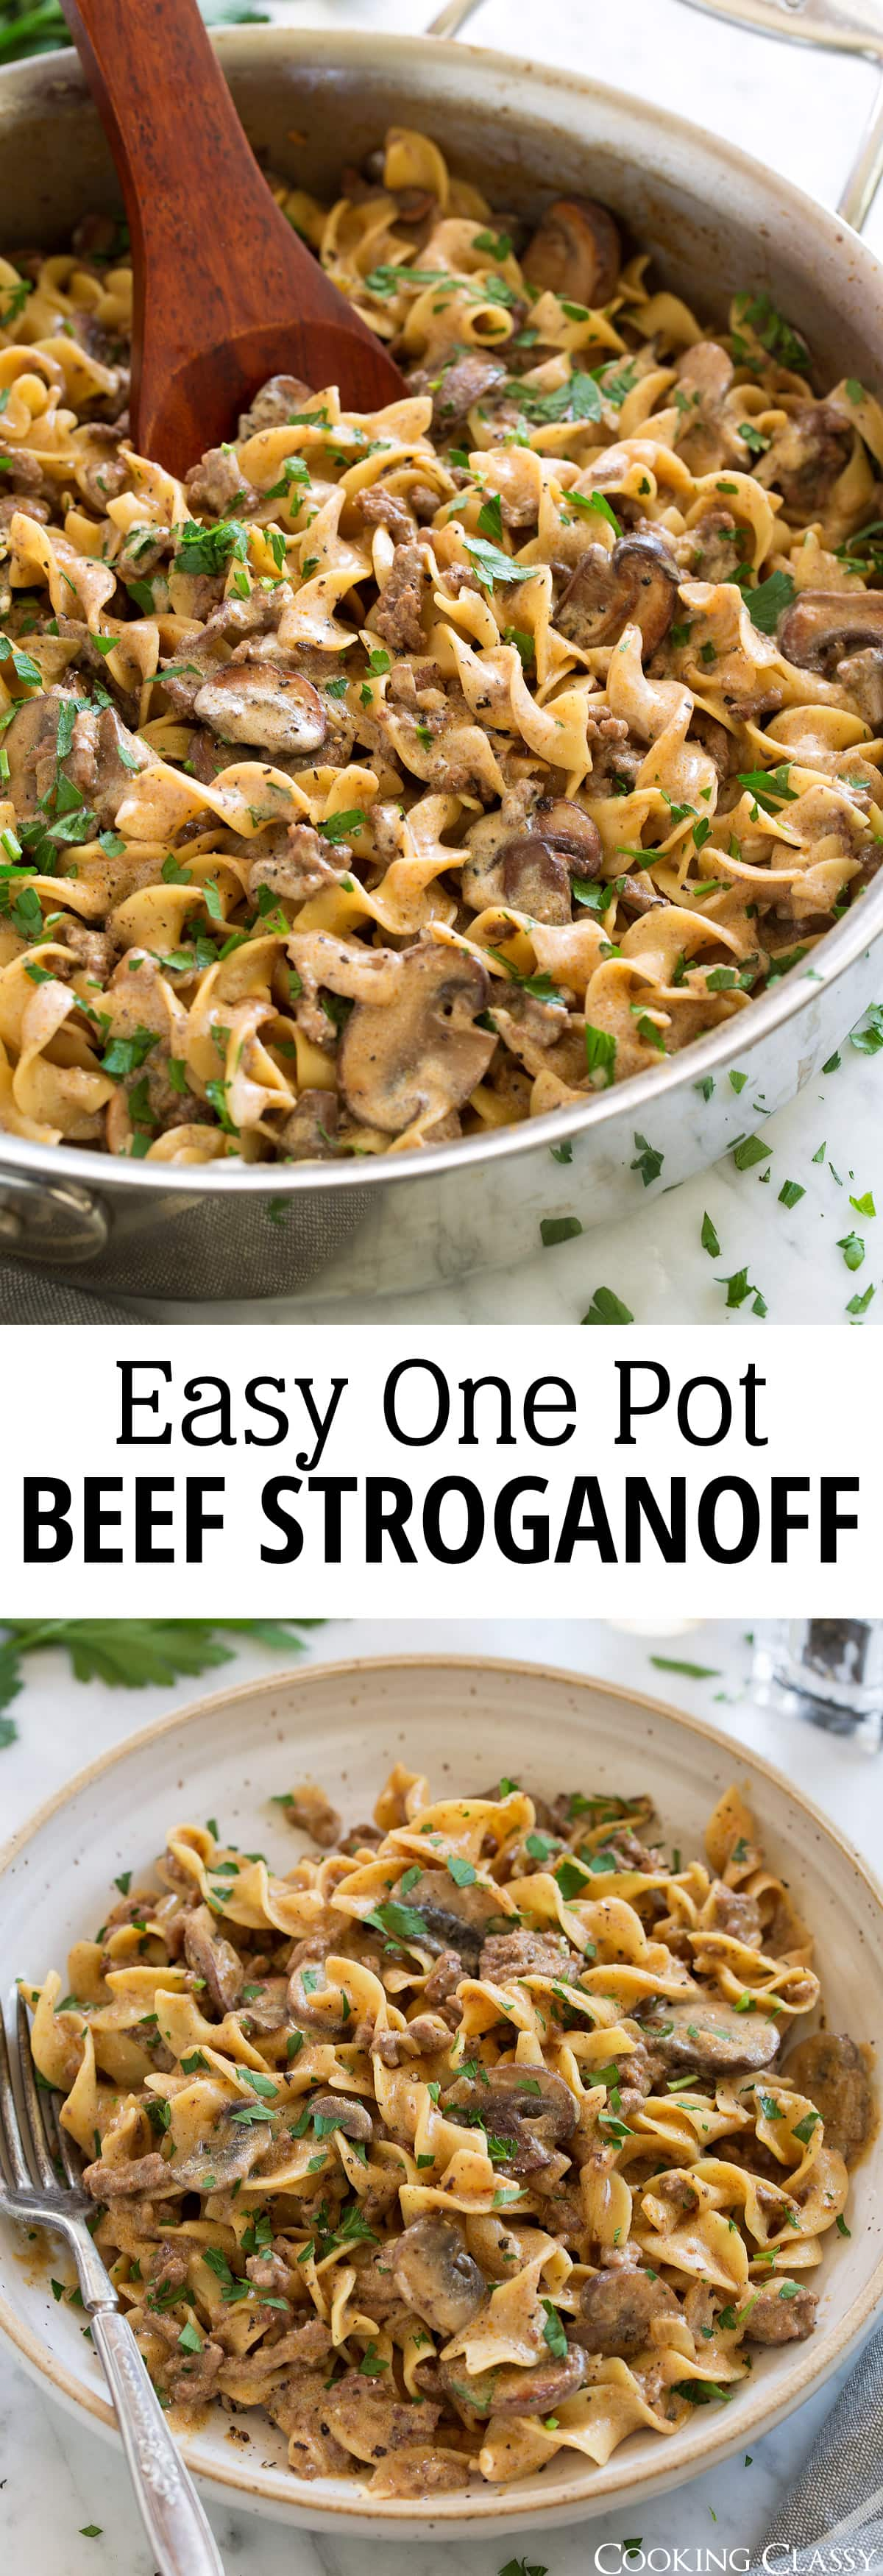 Beef Stroganoff Easy One Pot Recipe Cooking Classy